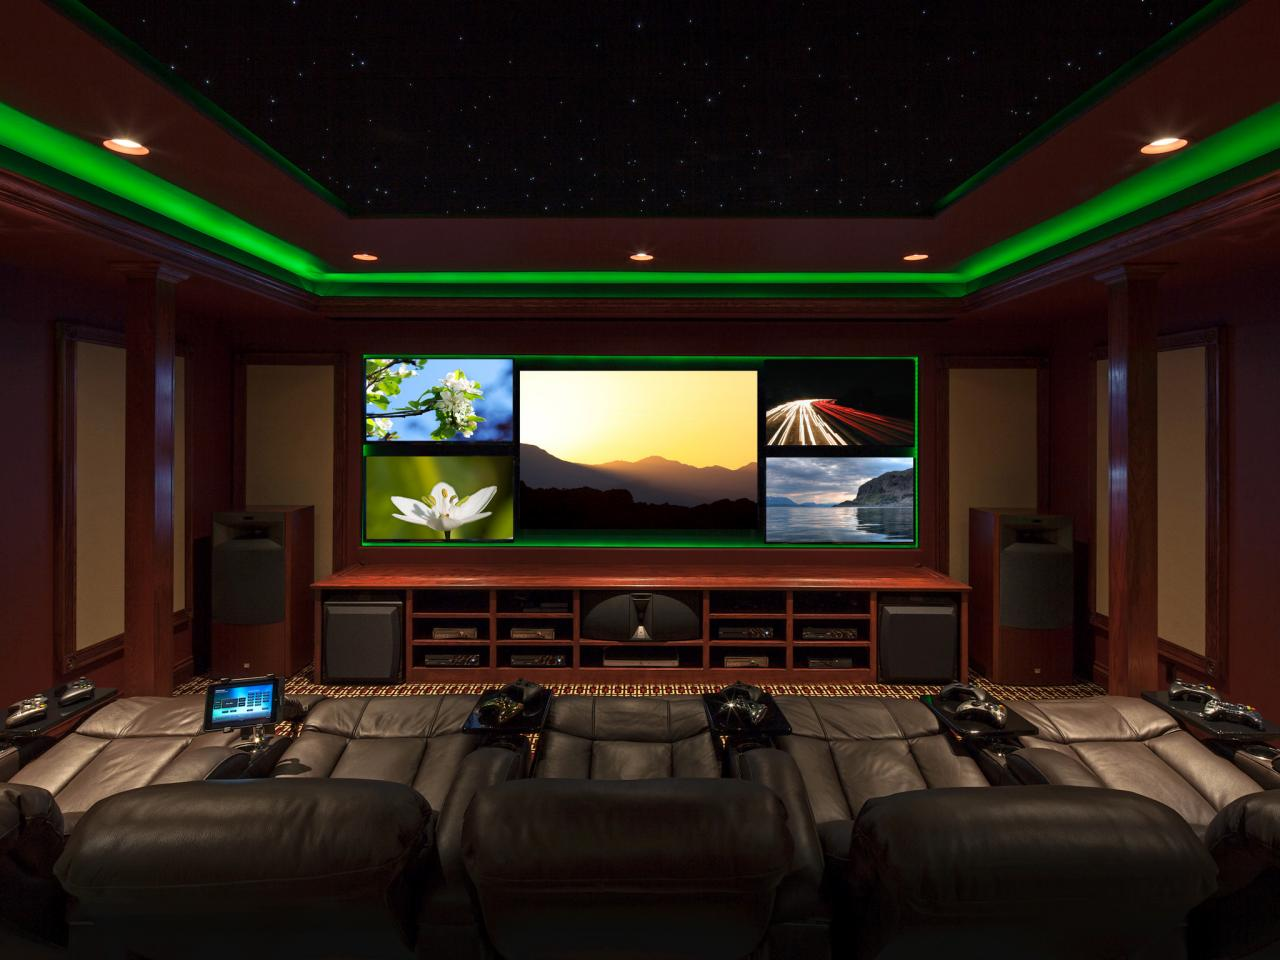 47 epic video game room decoration ideas for 2017 Ultimate lighting